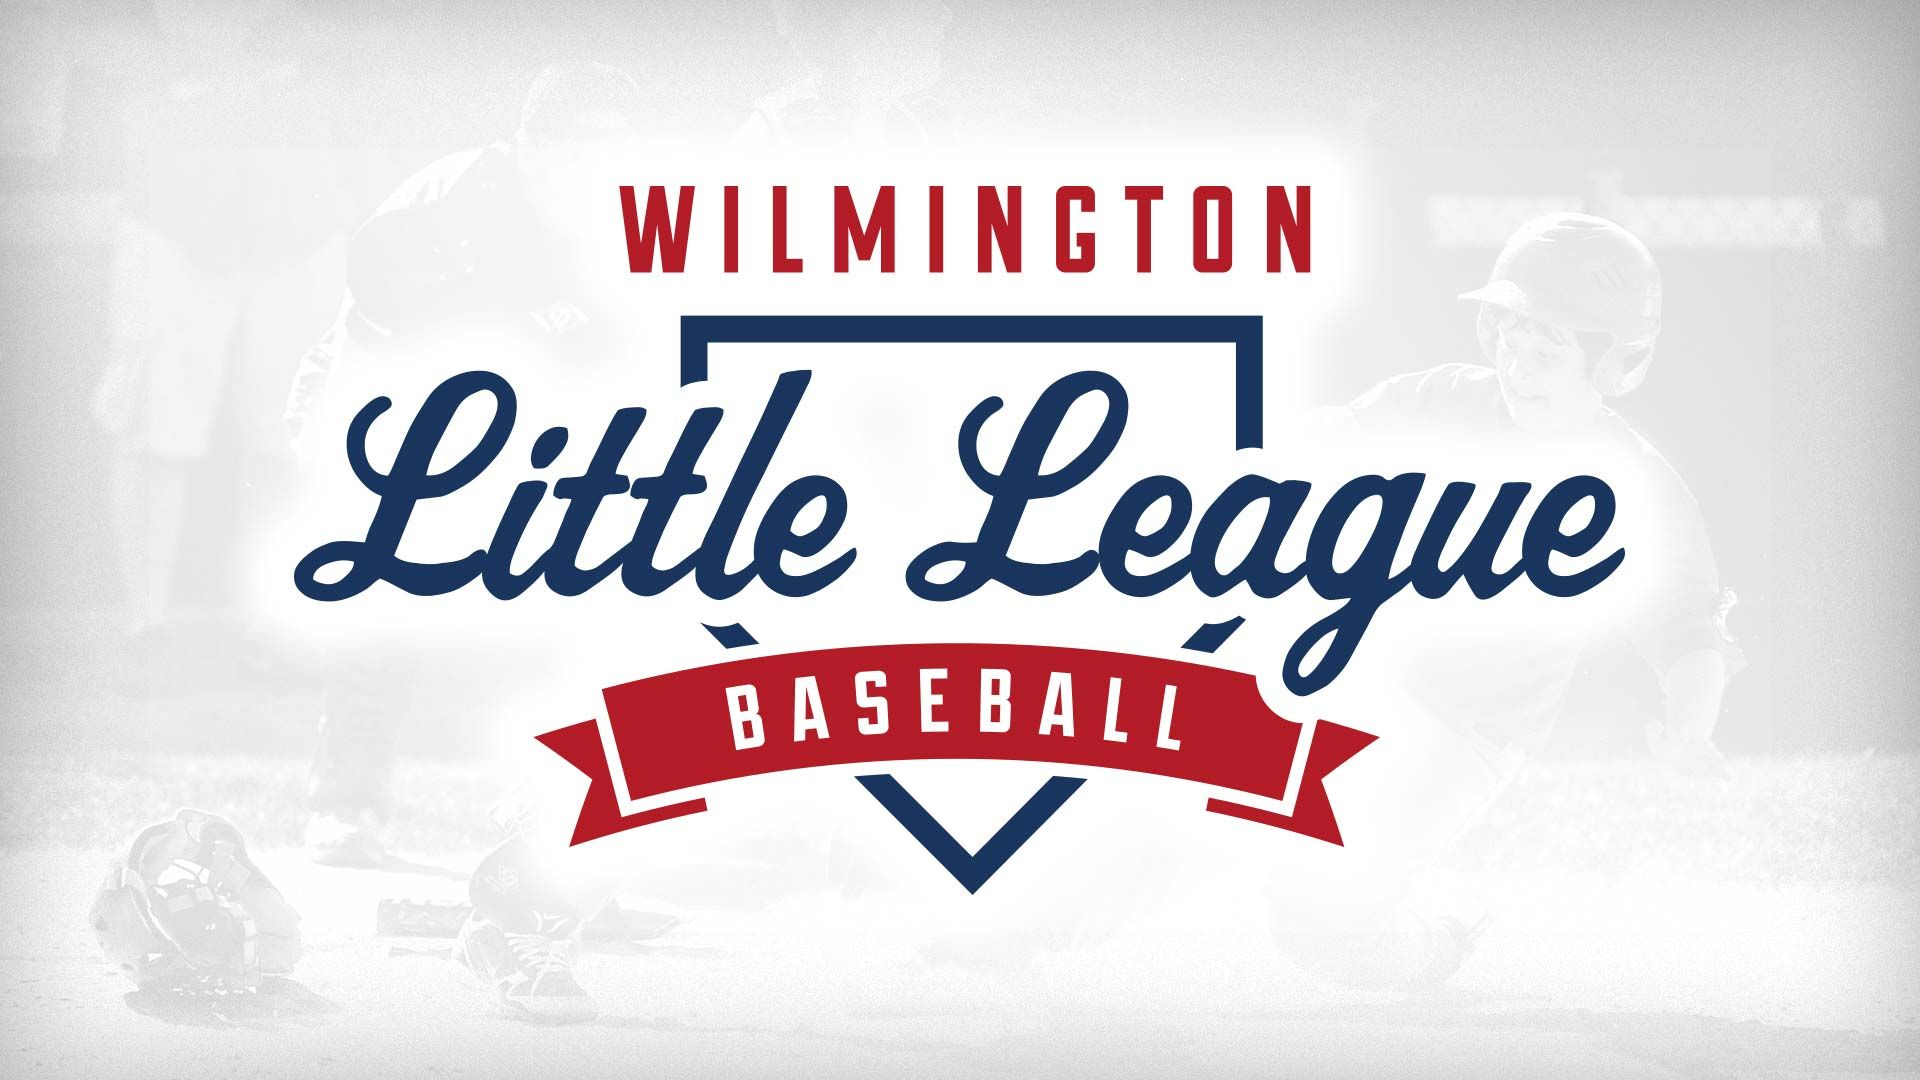 Impact Church Asked Us To Help Them Create A New Logo For Wilmington Little League Baseball In Wilmington Nc W Little League Baseball Little League Softball Baseball League